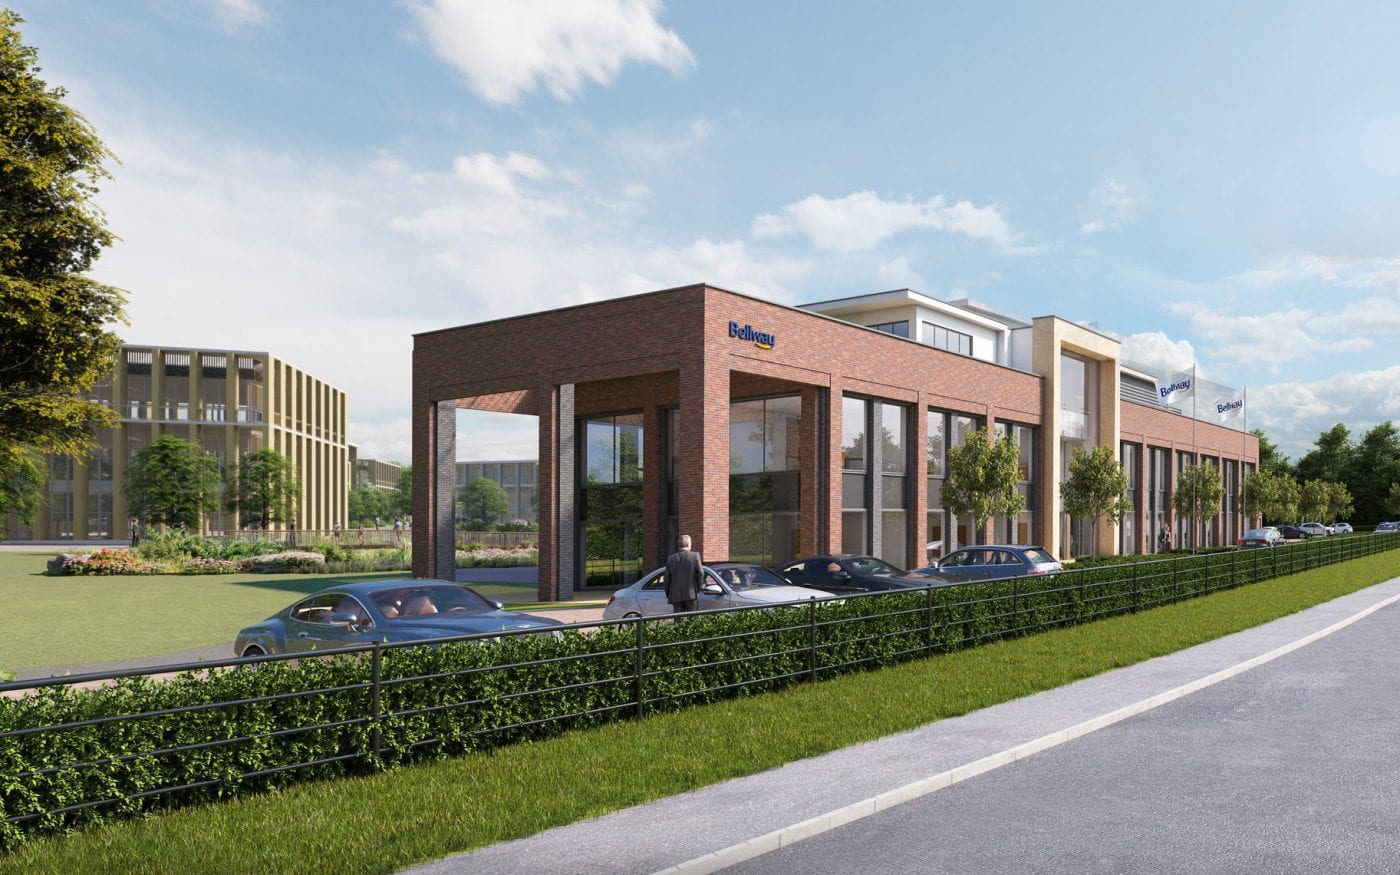 AirView Business Park is the ideal location for Bellway's new UK head office